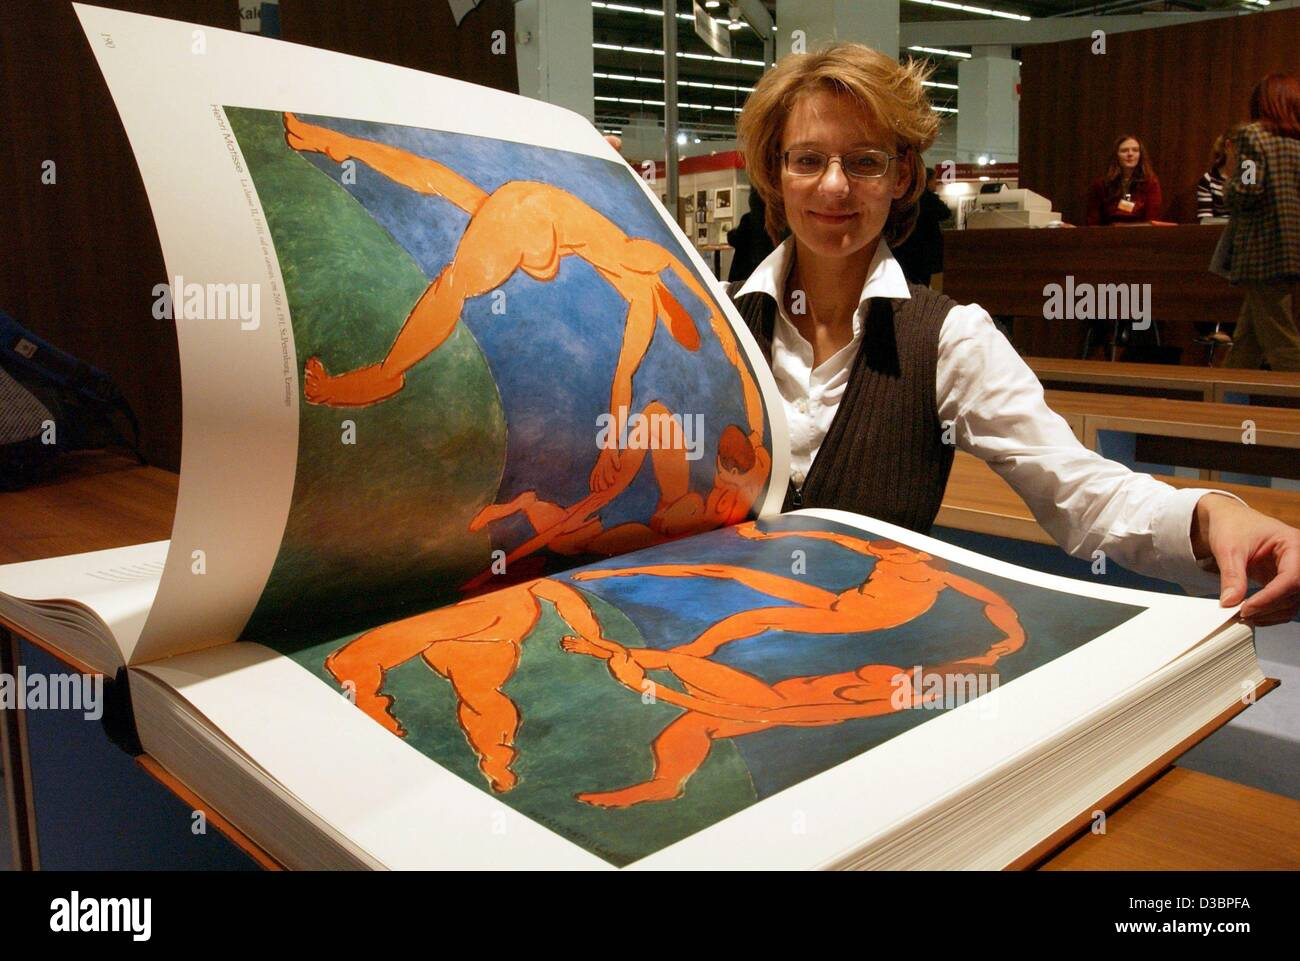 (dpa) - Ruth Schoellhammer leafs through titled 'Revolution and painting', published by Art-Media-Edizione, - Stock Image